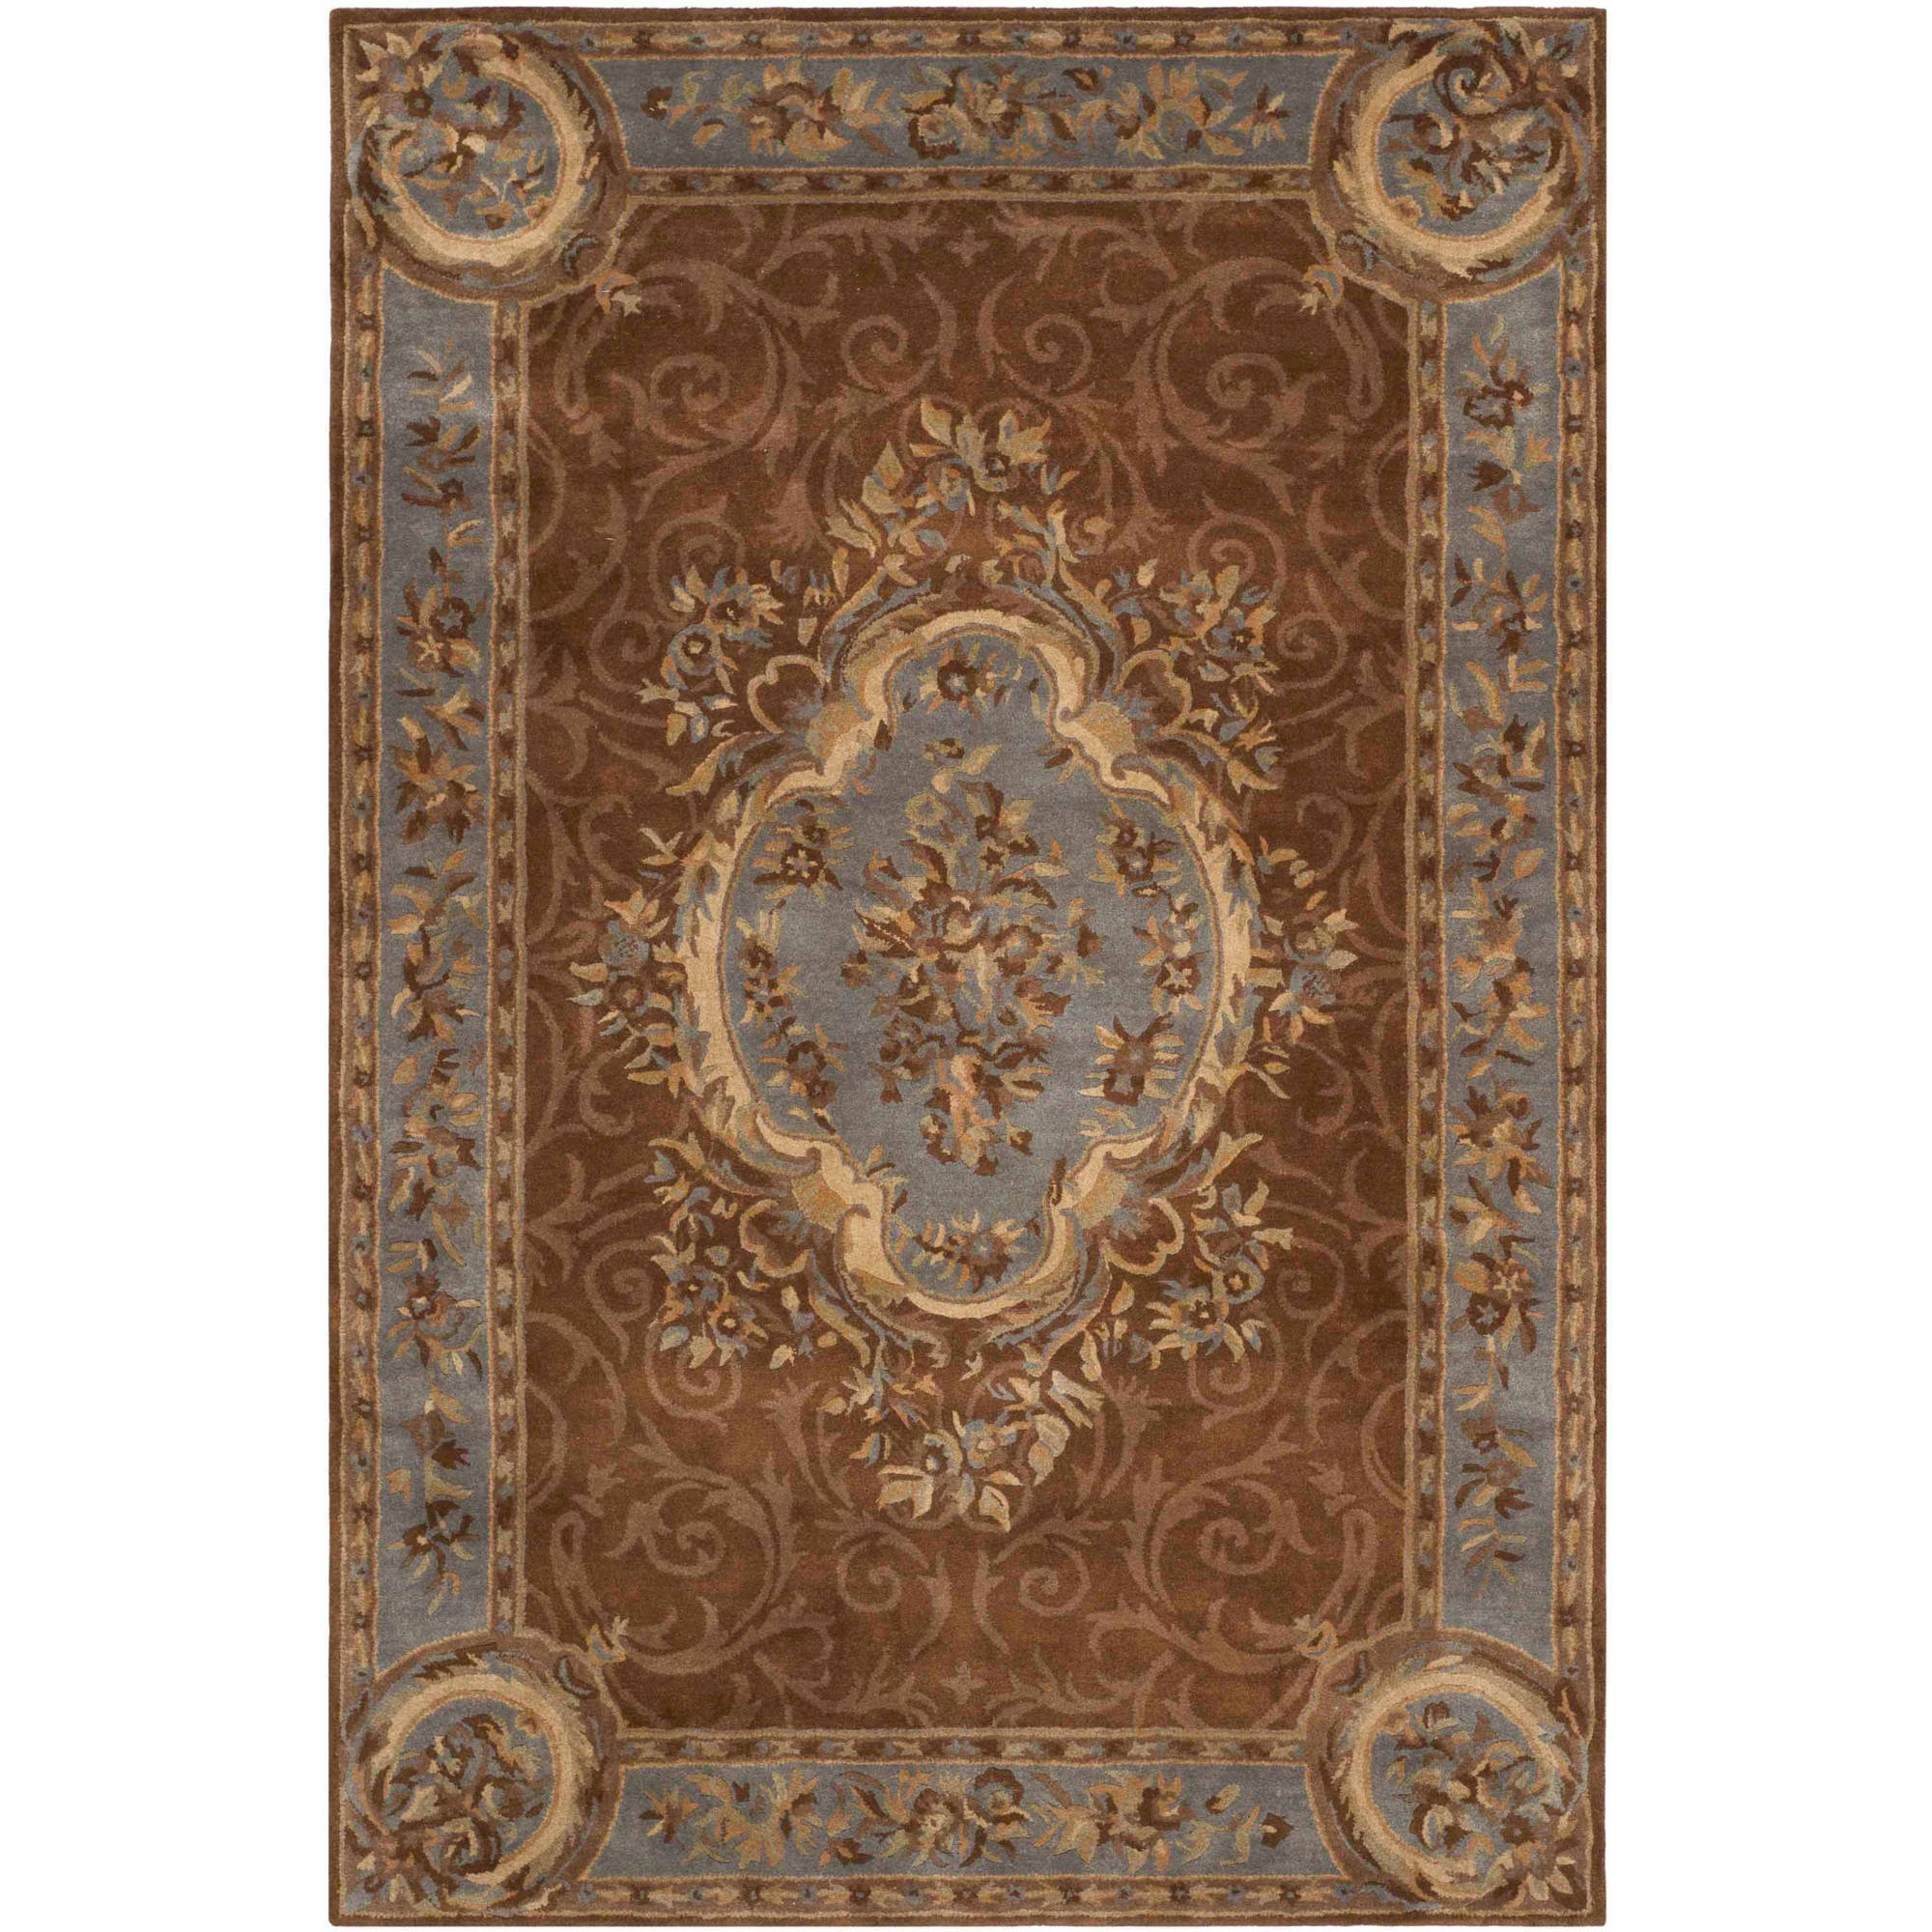 Safavieh Empire Ormonde Hand-Tufted Wool Area Rug, Blue/Brown